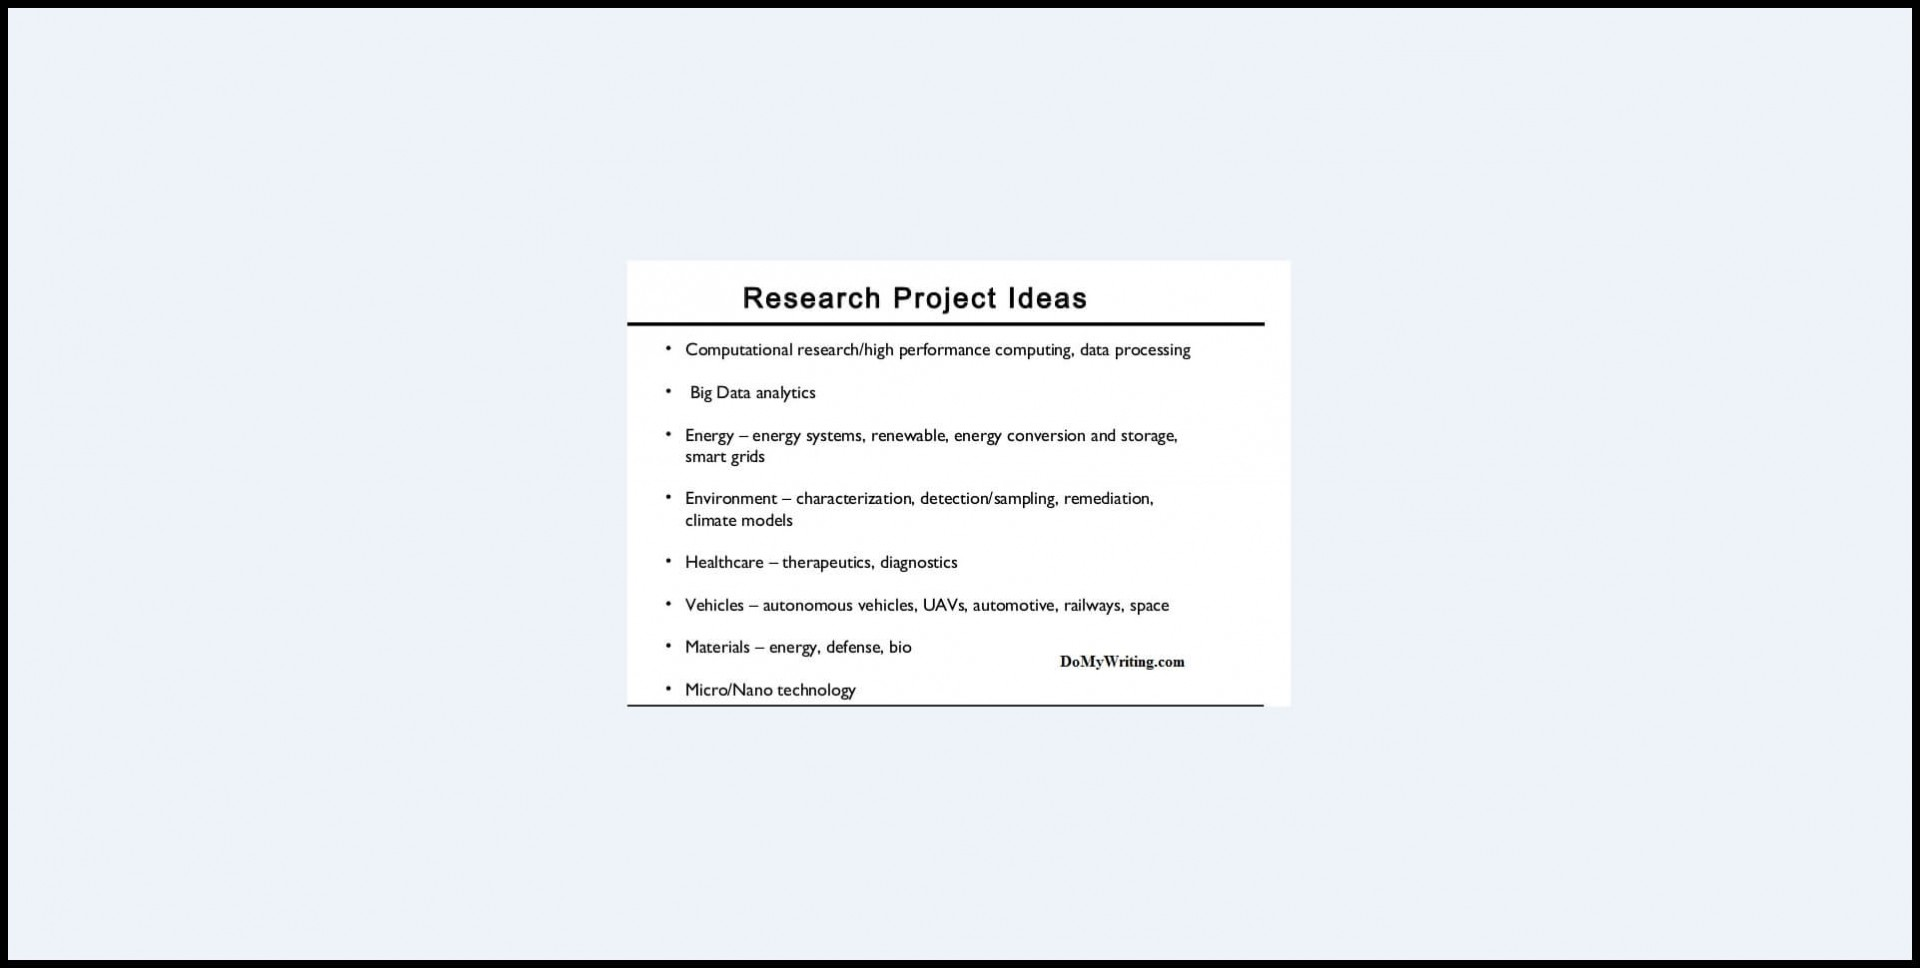 004 Research Project Ideas Paper Cool Topics To Do Wonderful A On Interesting For Projects 1920